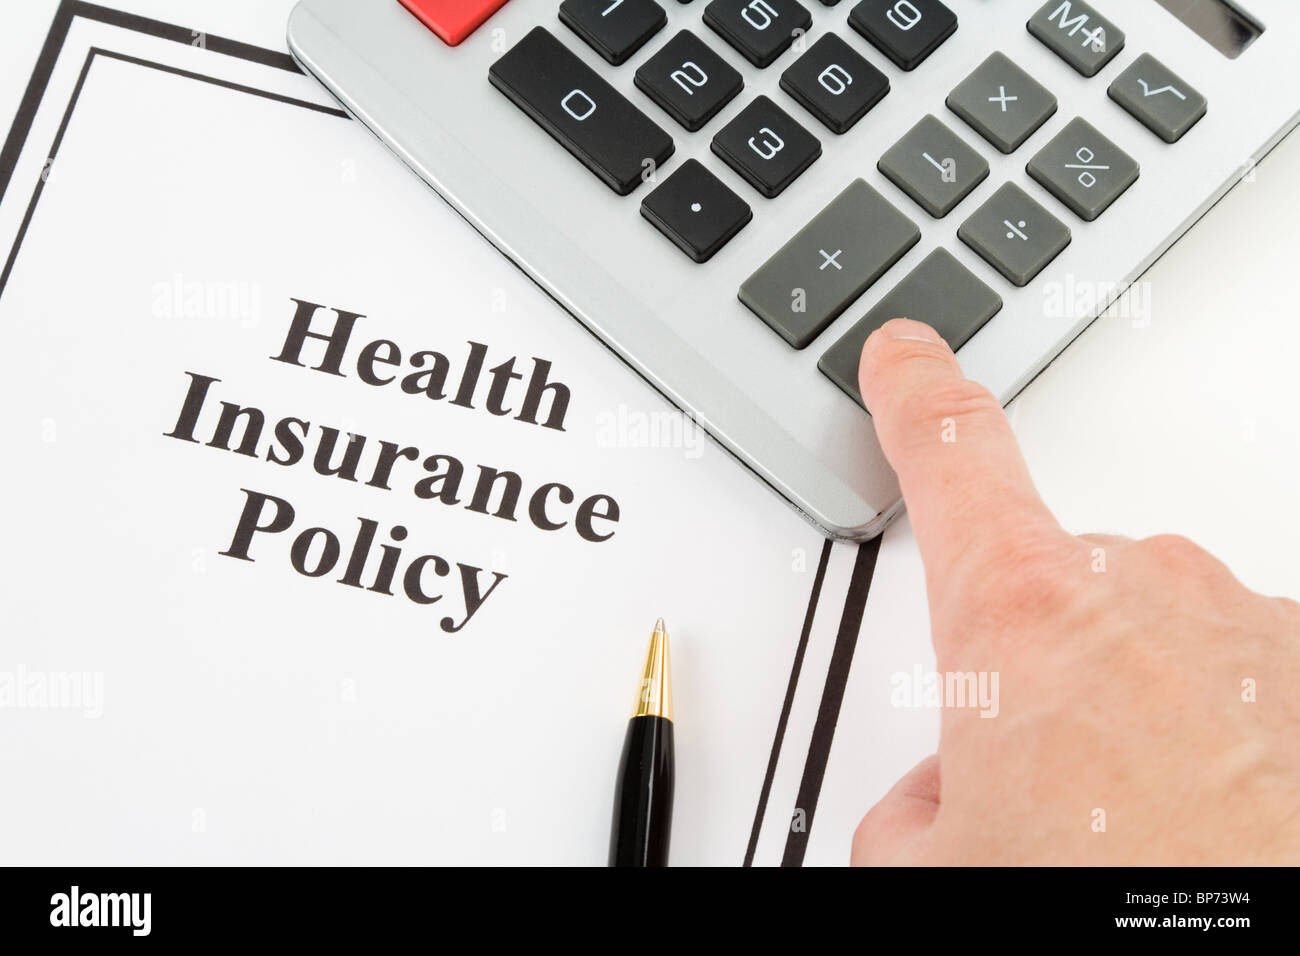 Document of Health Insurance Policy and calculator, for background - Stock Image